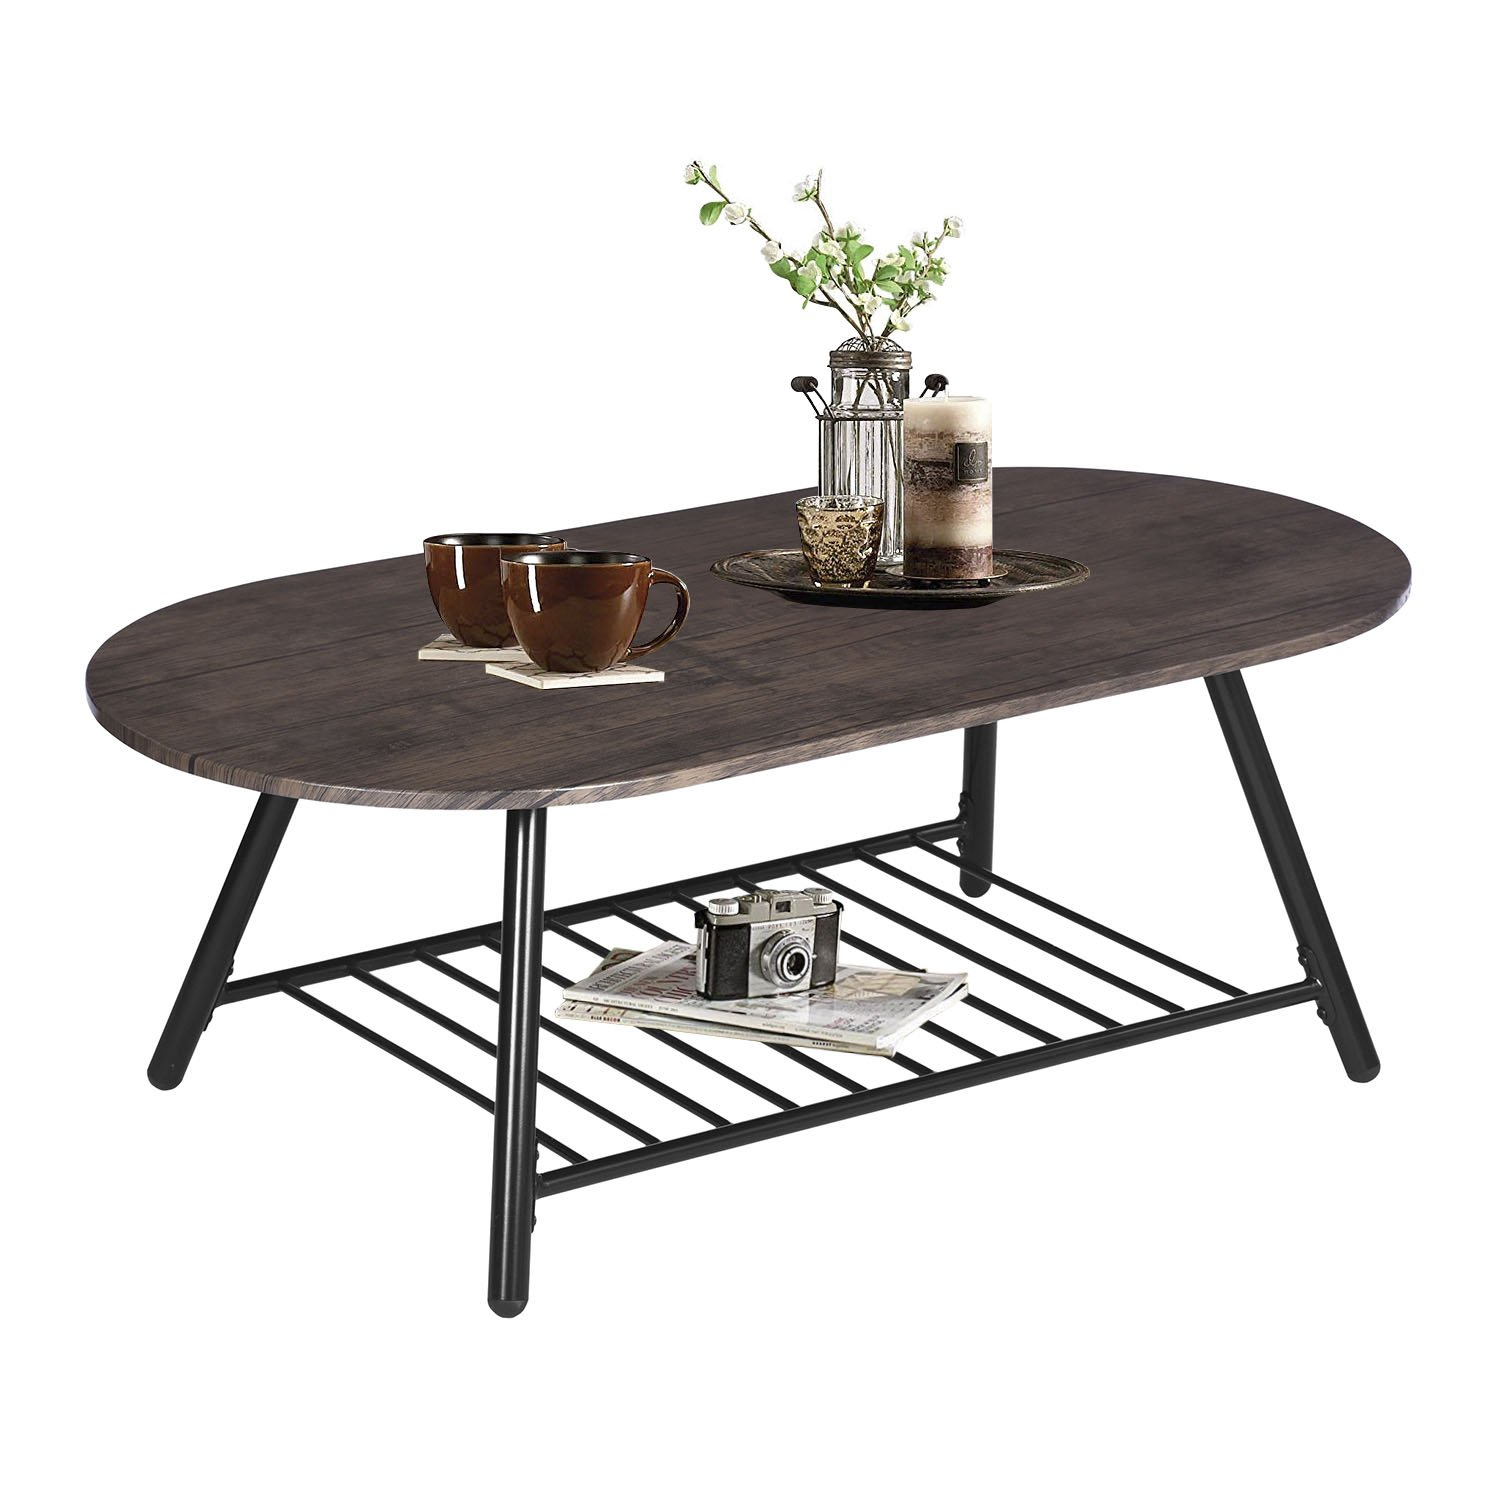 Amazon com coffee table wooden industrial feel round cocktail table with lower metal frame vintage for living room bedroom home and office walnut kitchen